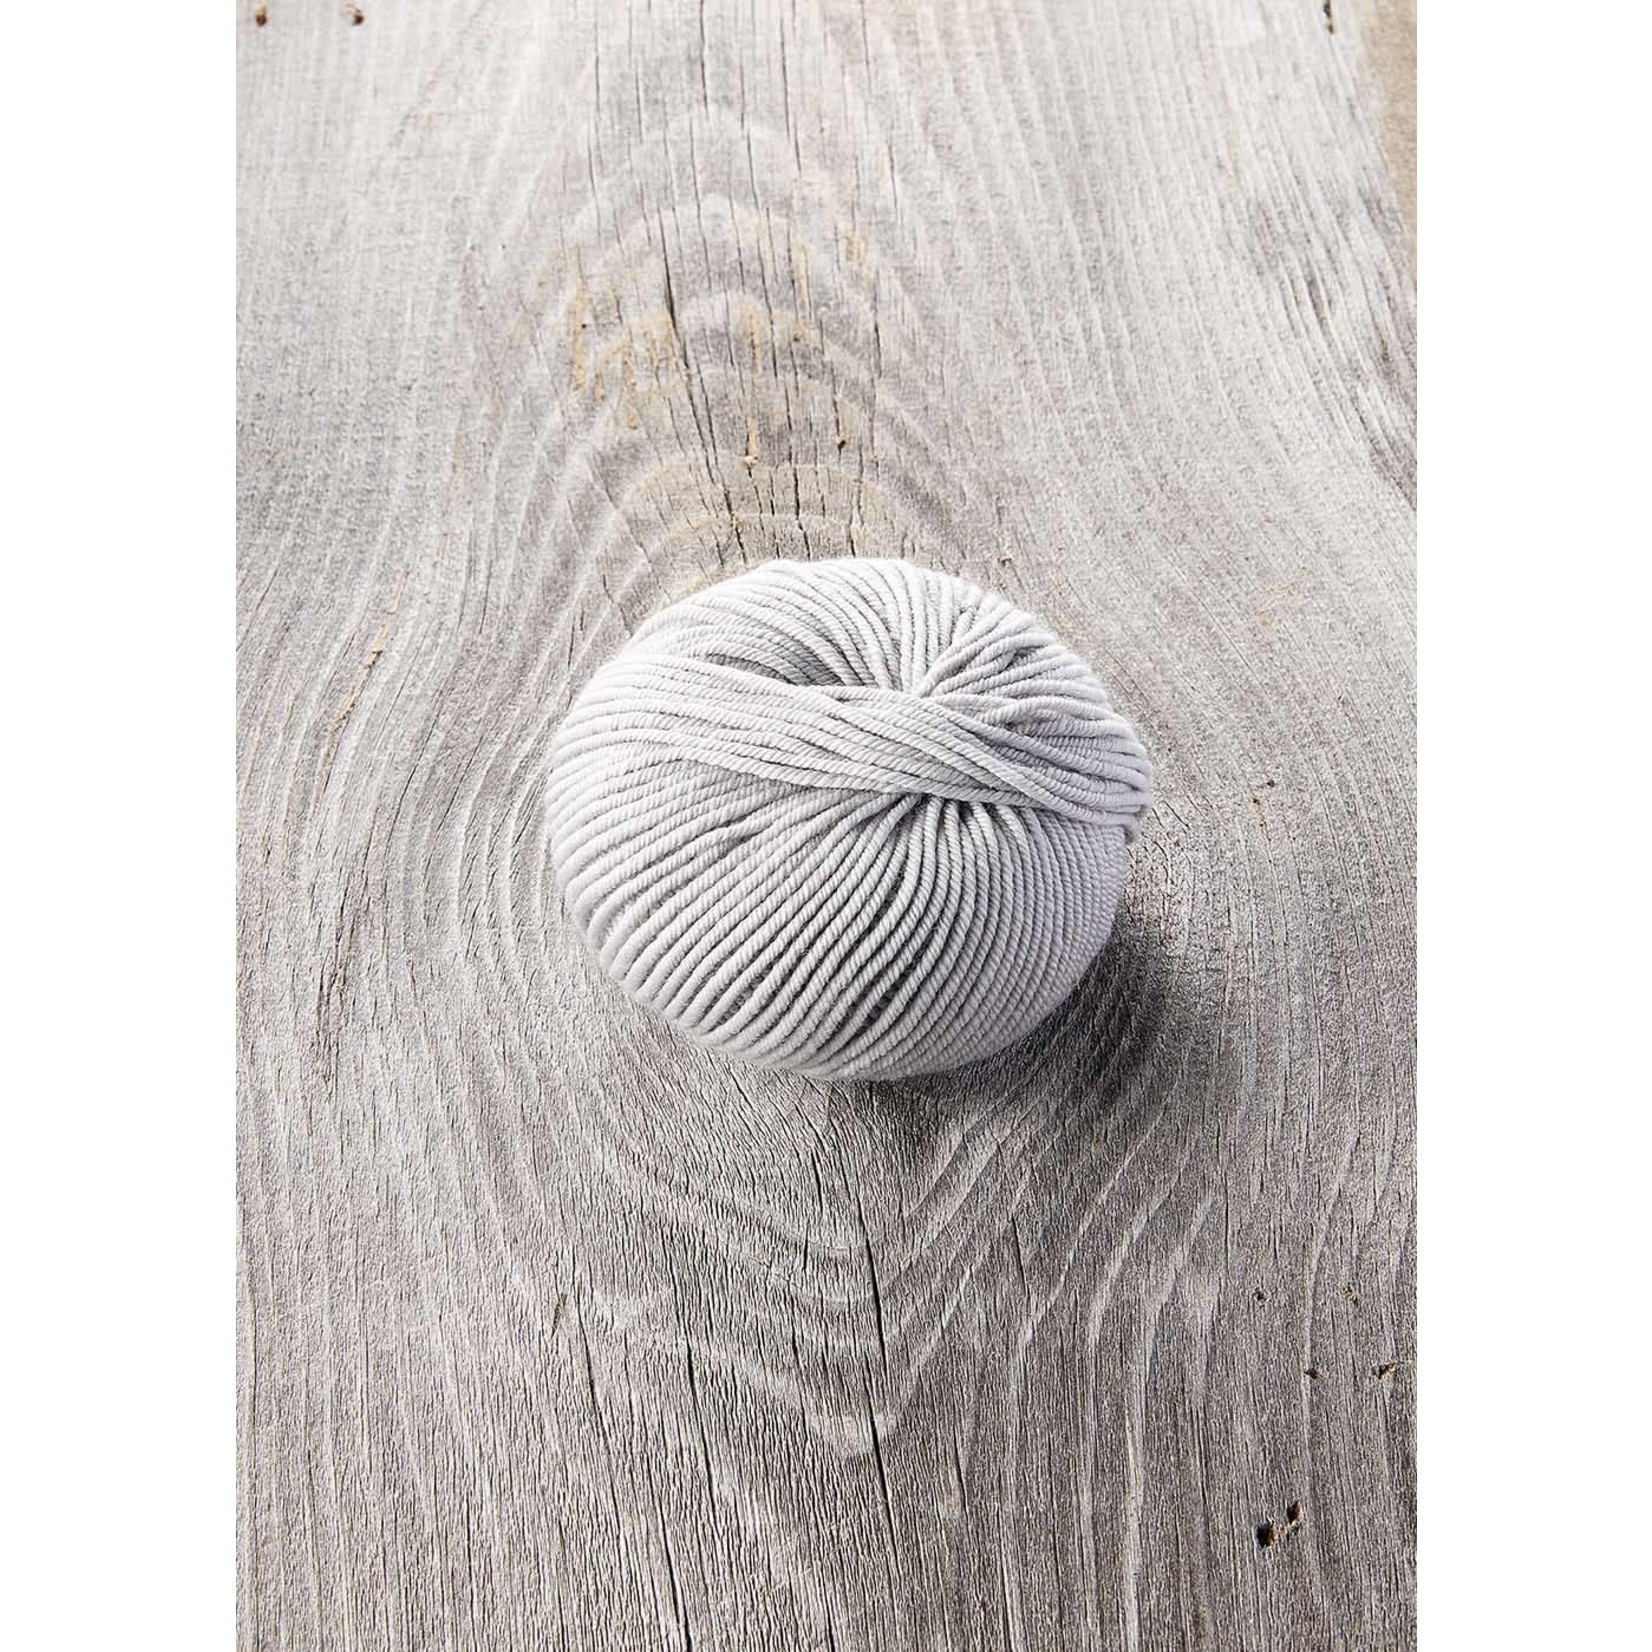 Sugar Bush Yarns Crisp